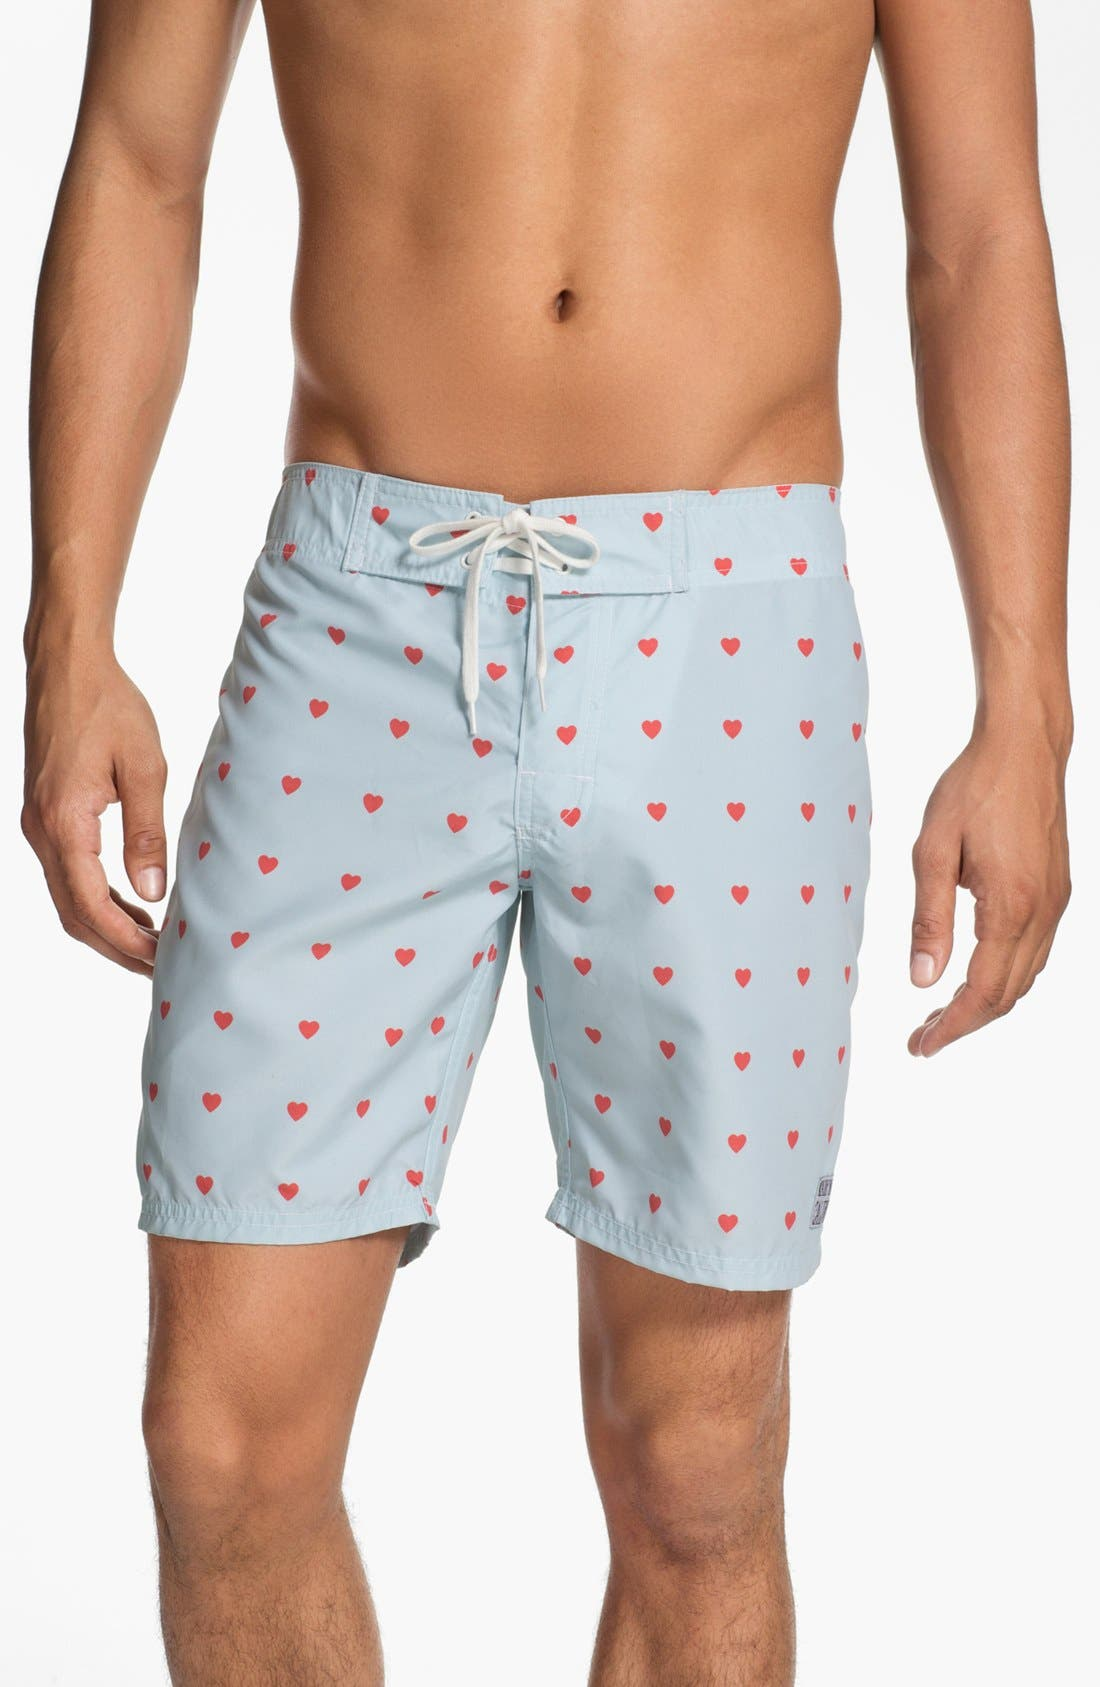 Alternate Image 1 Selected - ambsn 'Cupid' Print Board Shorts